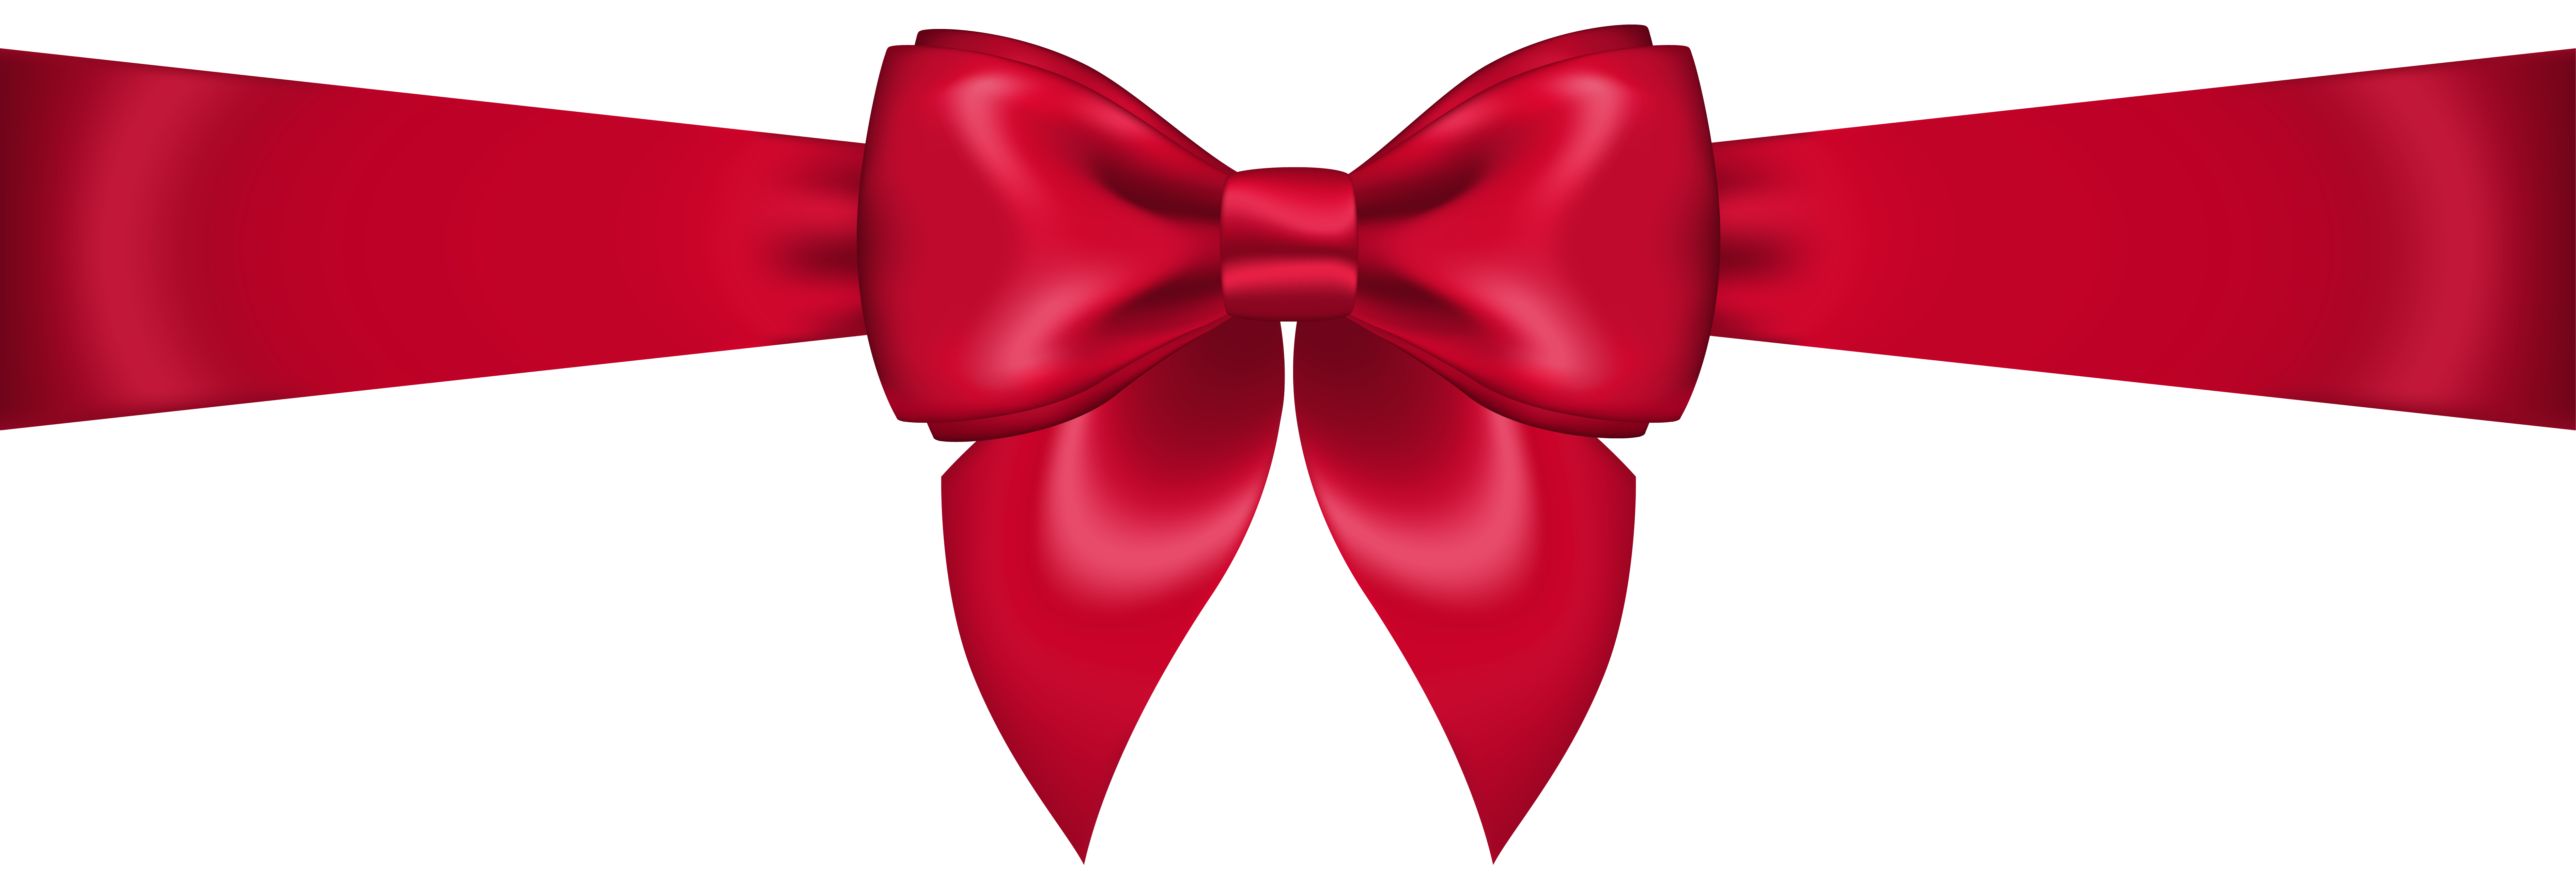 Transparent png clip art. Clipart bow red